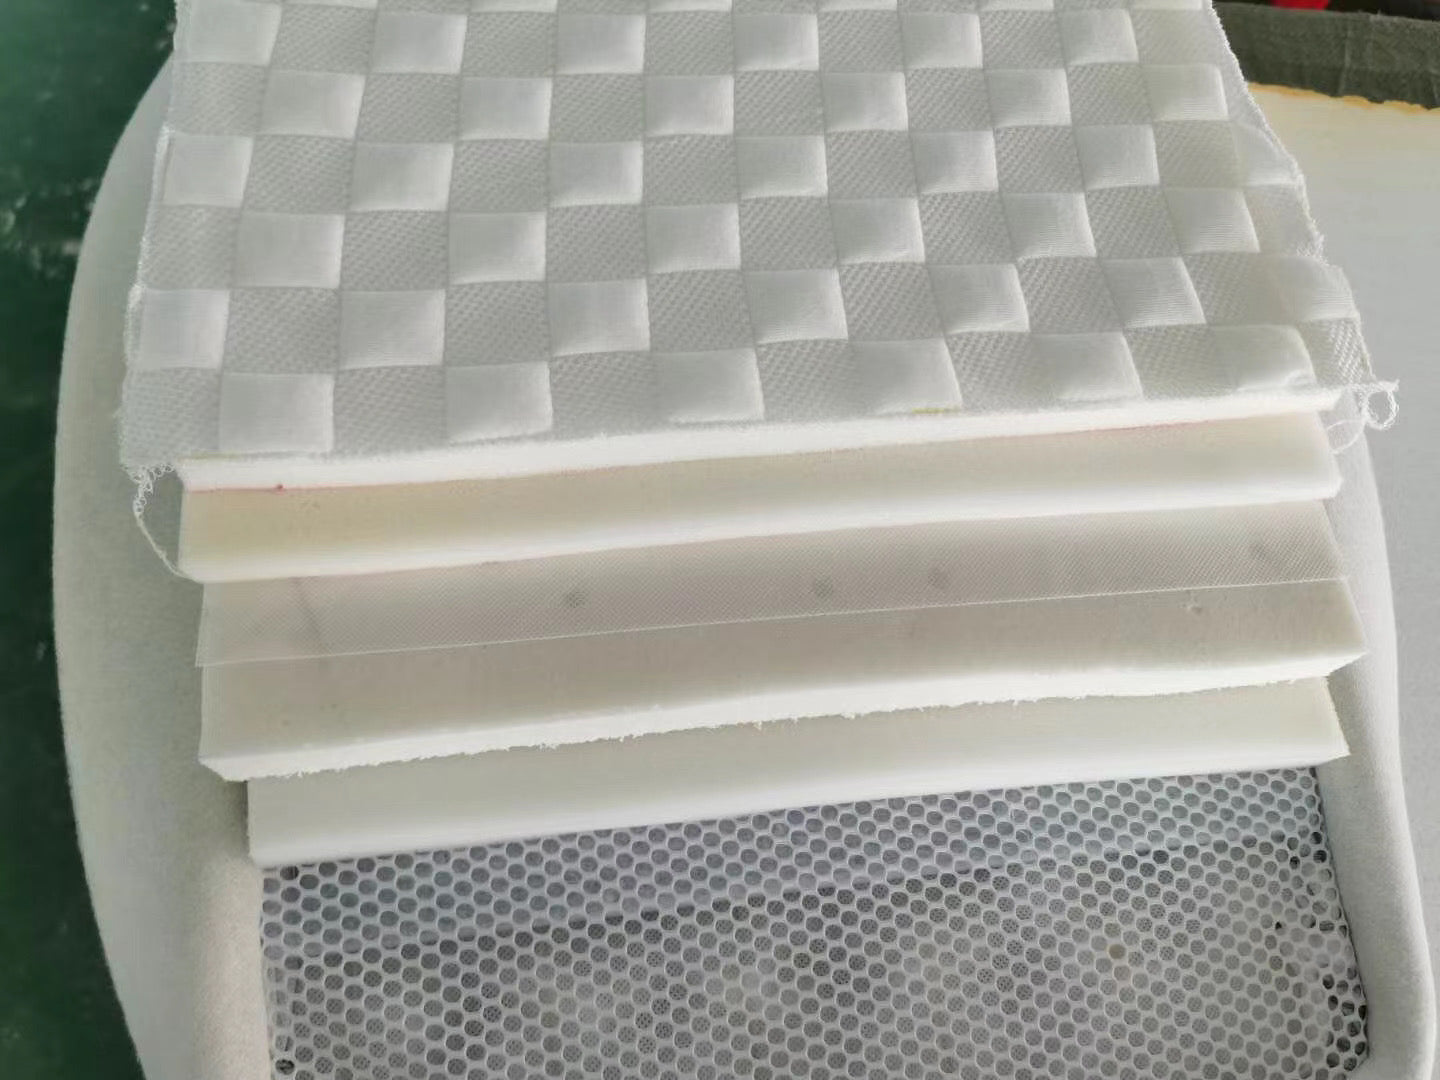 *MG* A023 Latex Mattress with pillow top 2 size in stock